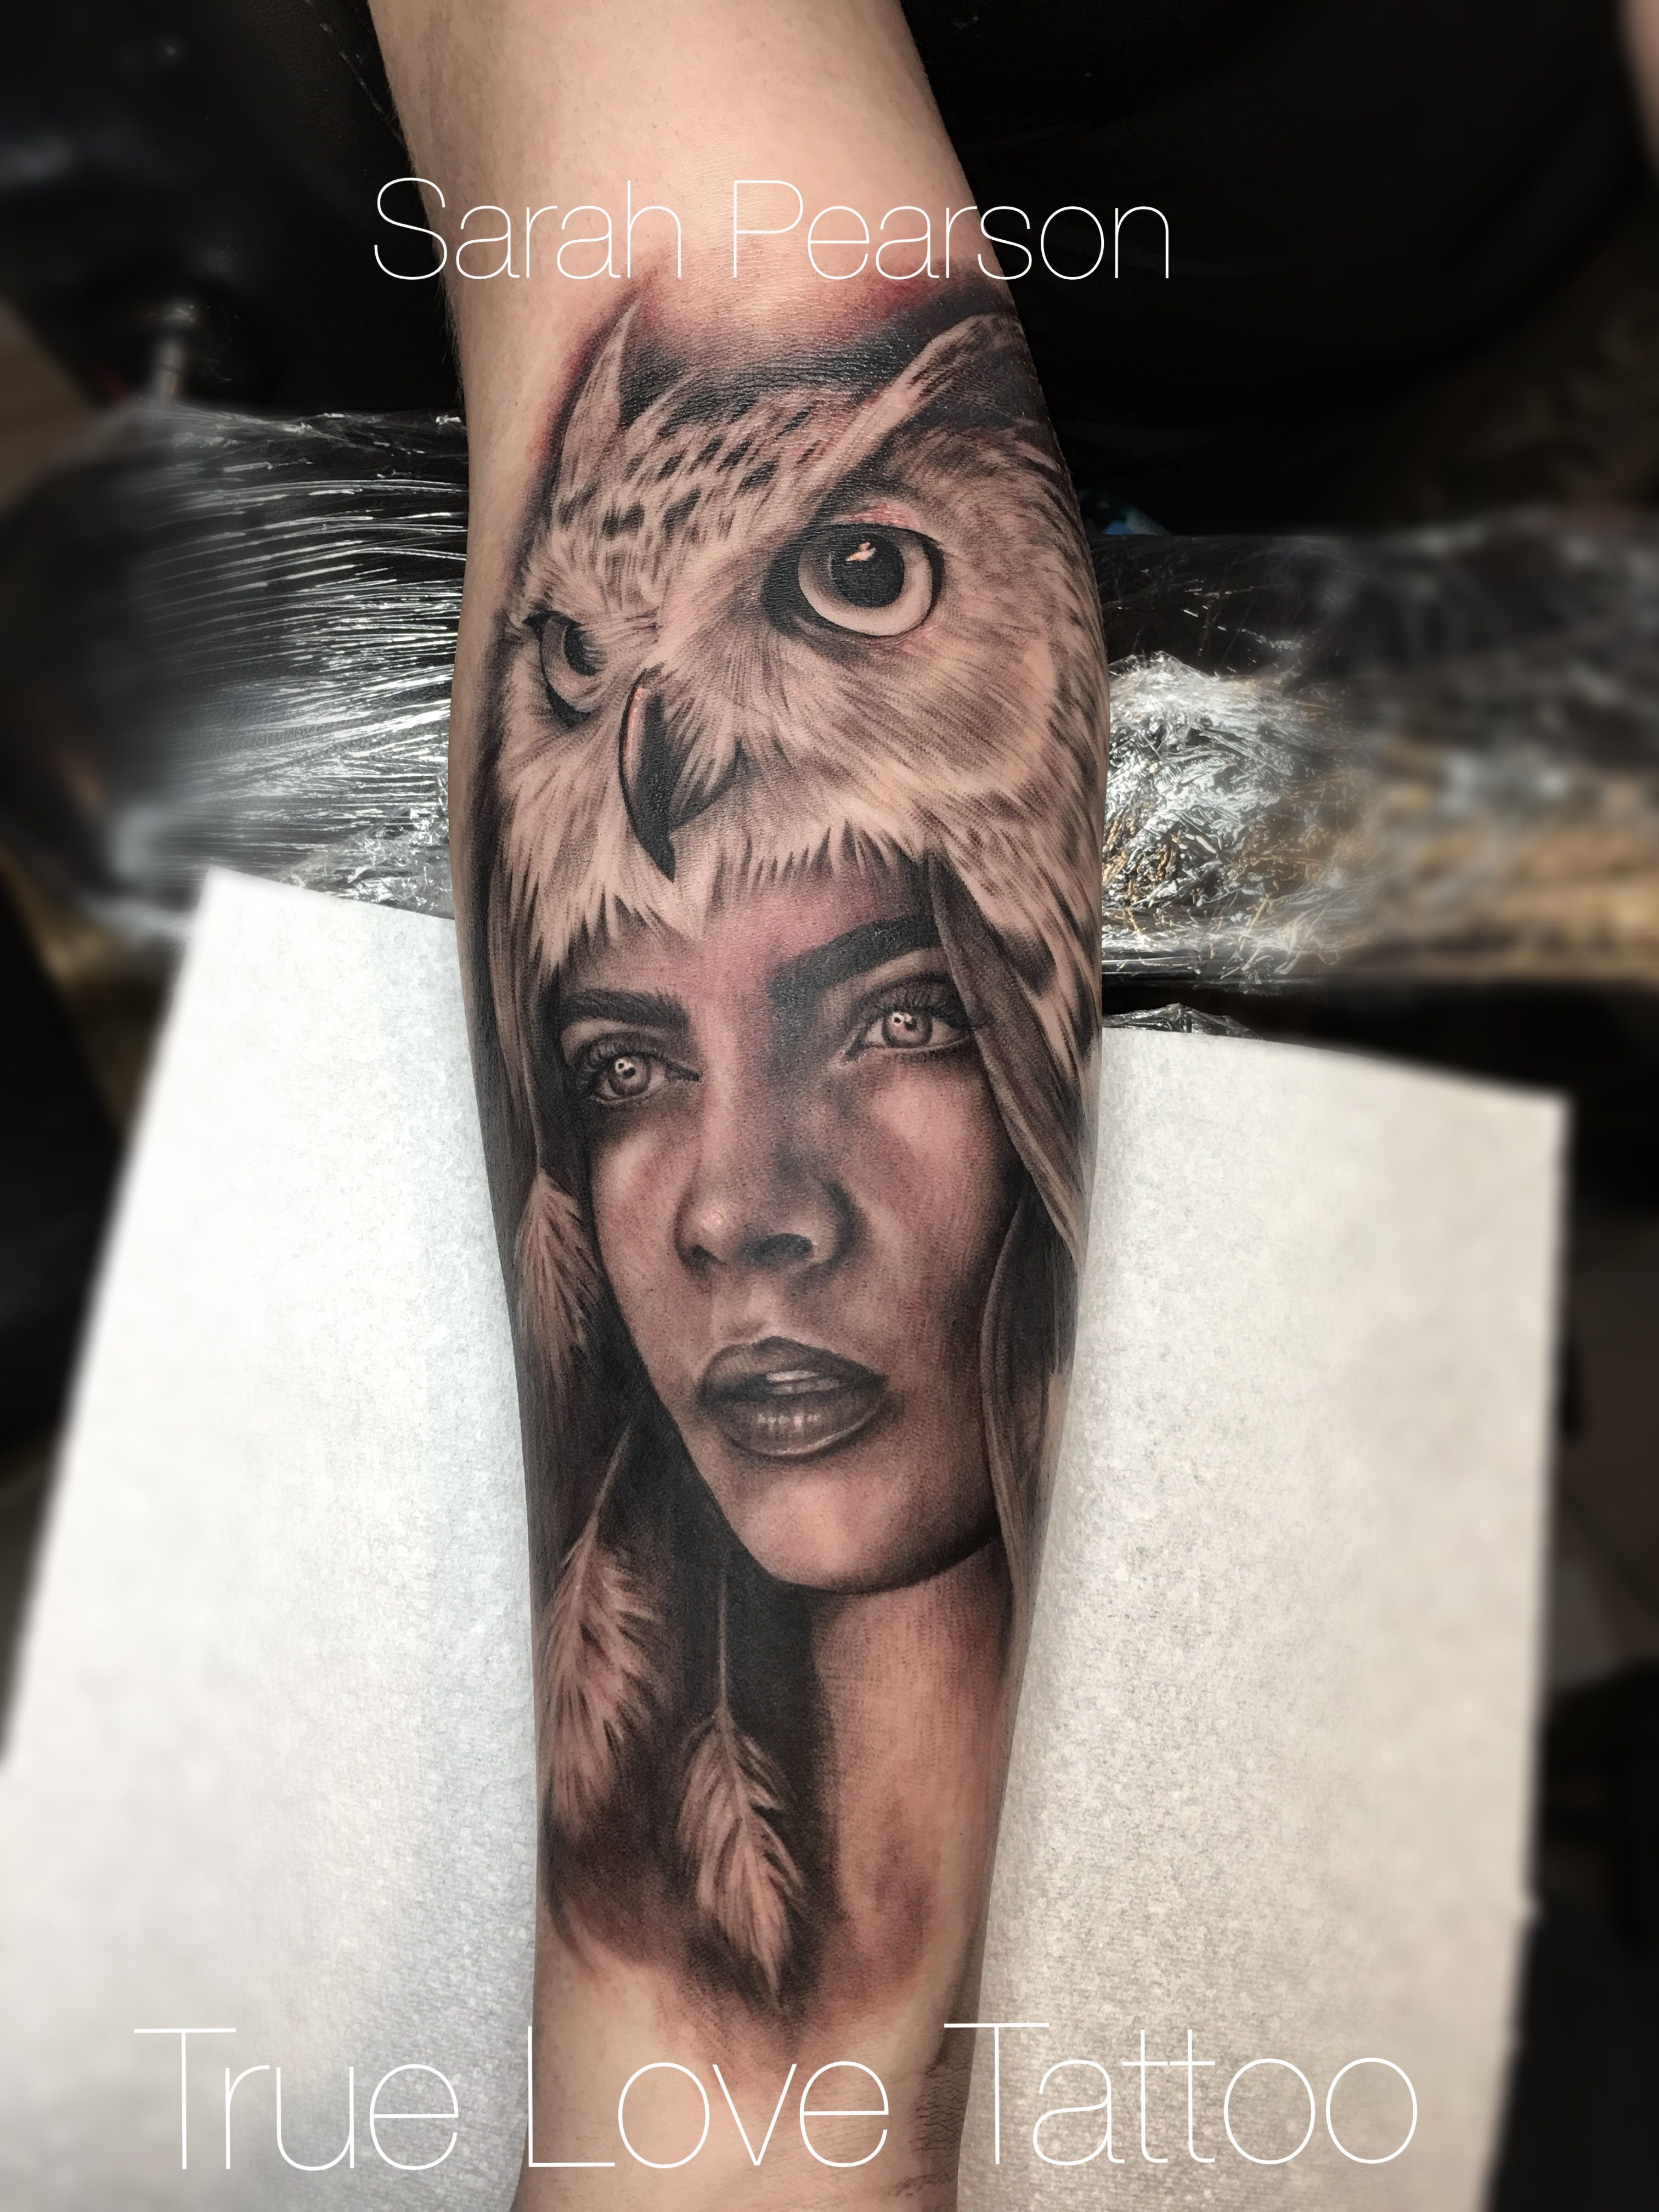 Woman with facial tattoos